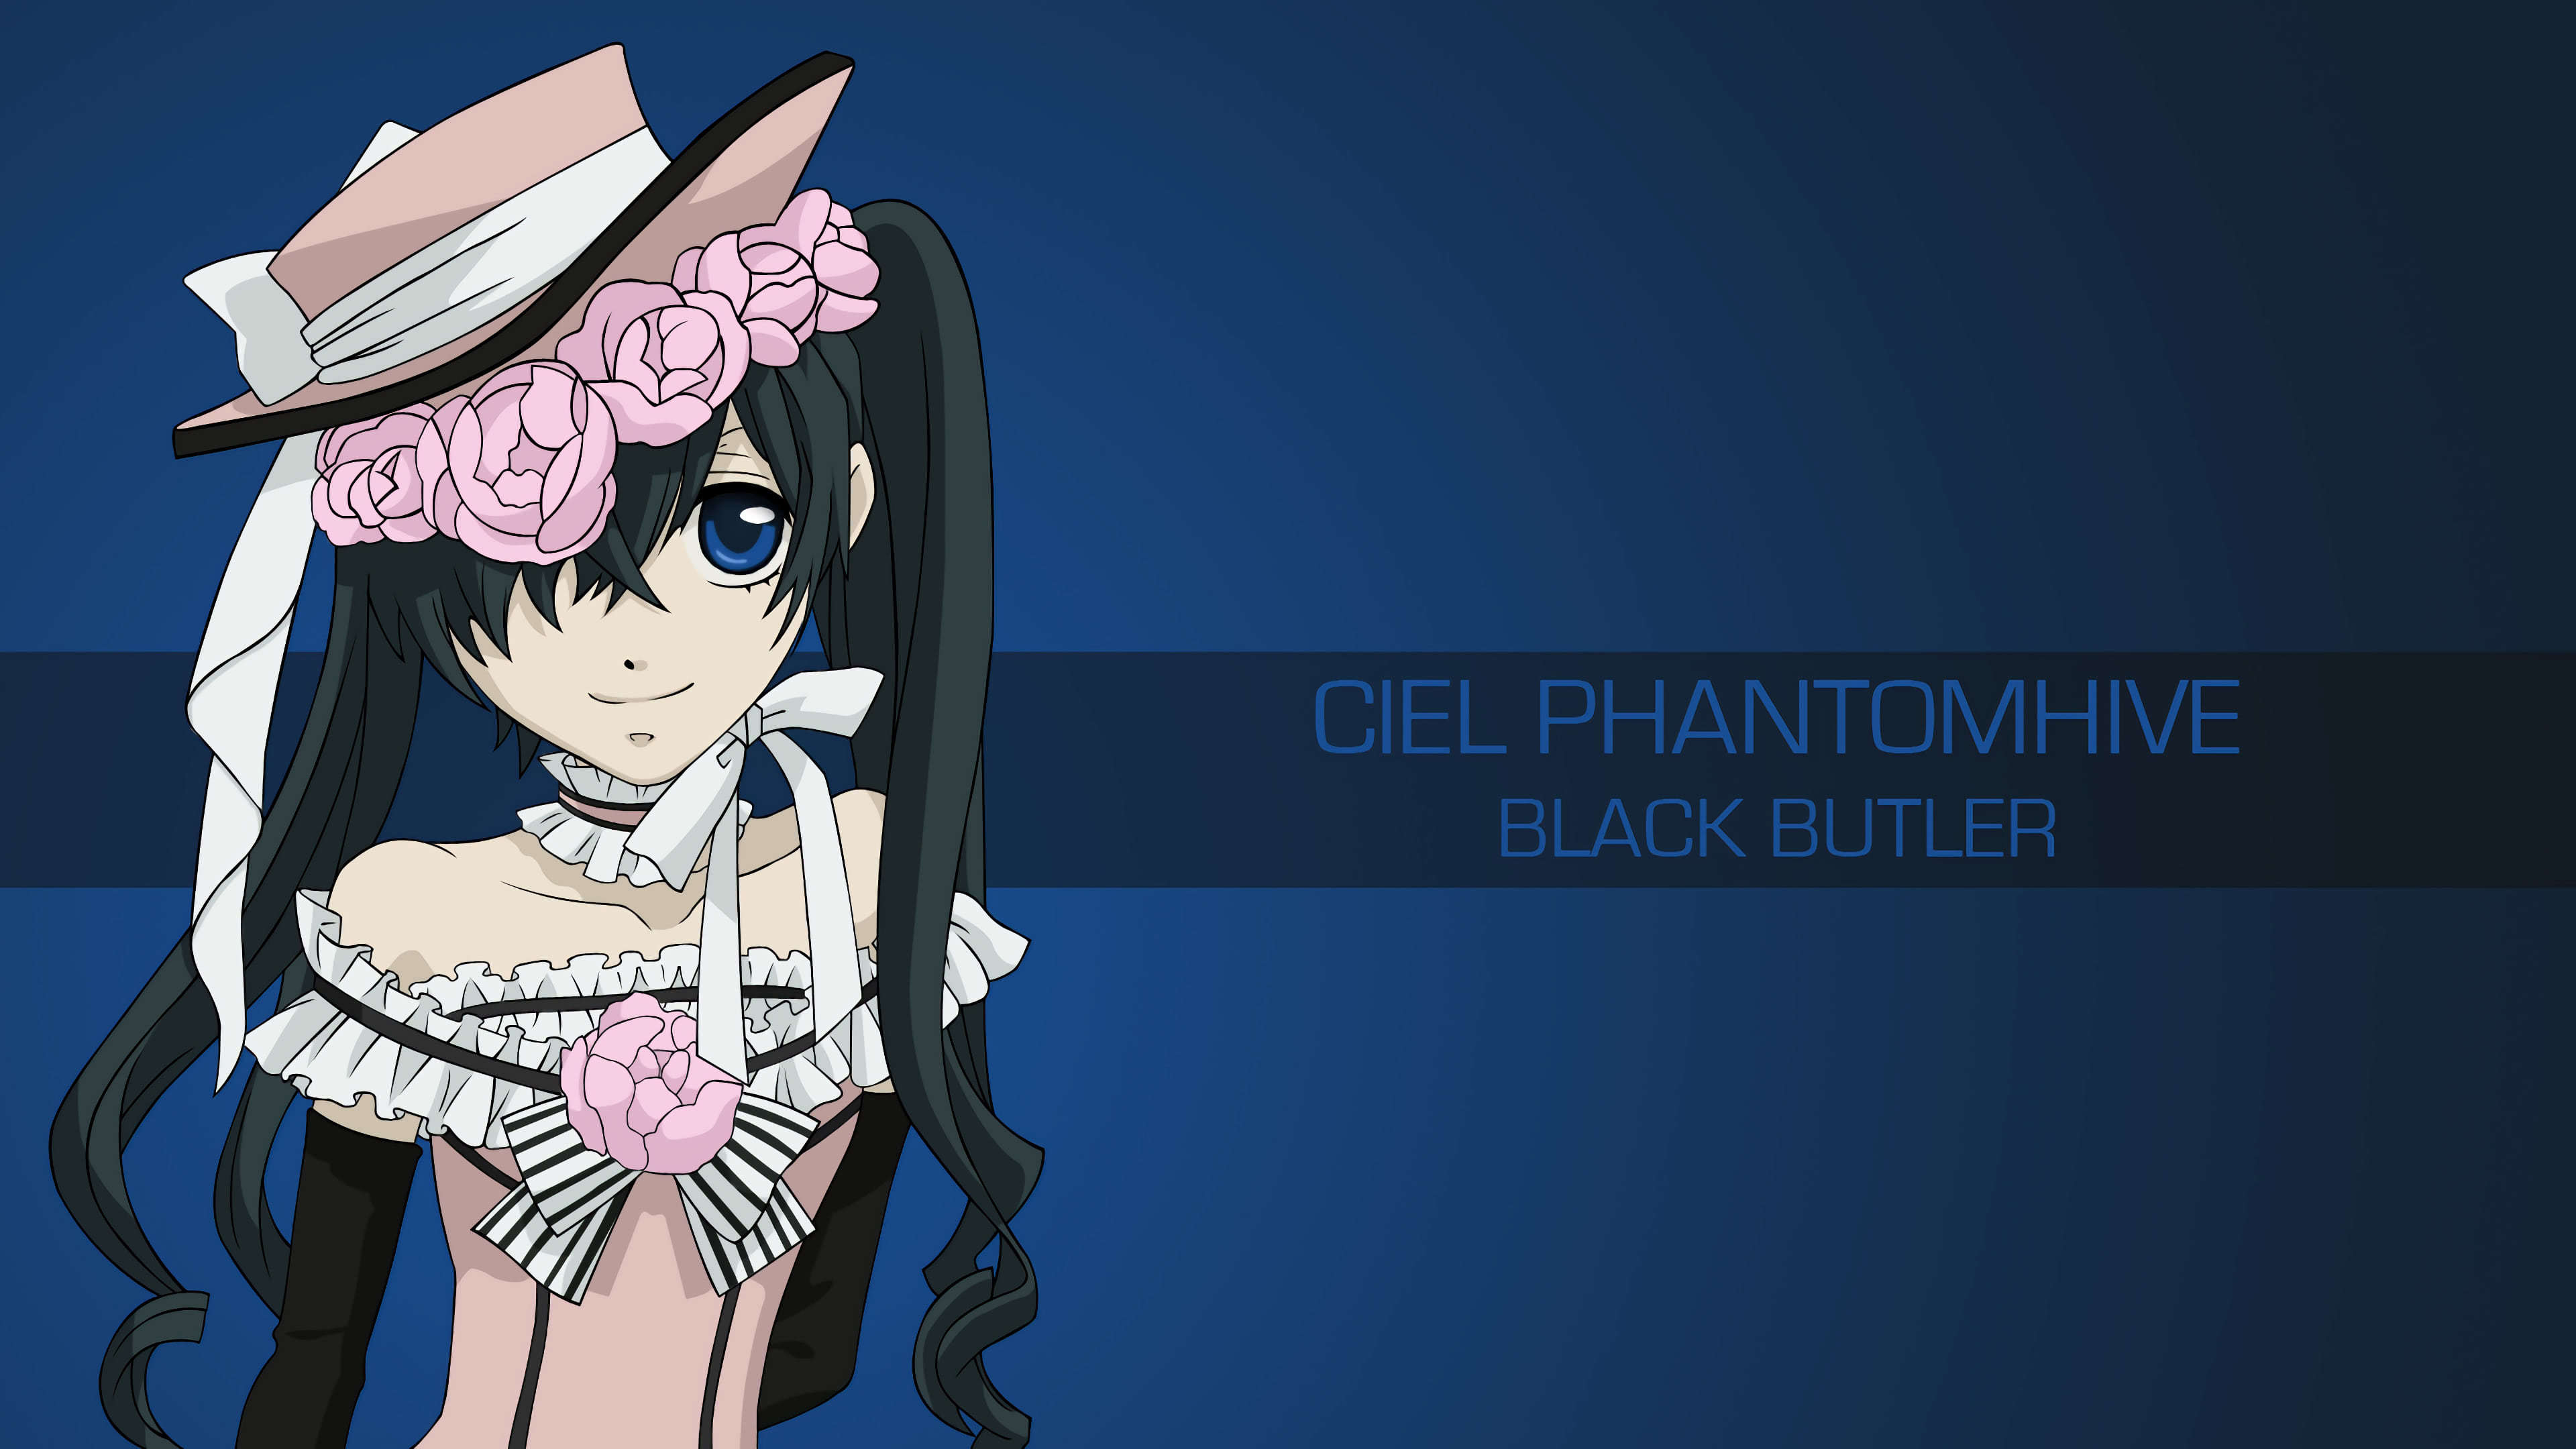 ciel phantomhive black butler uhd 4k wallpaper